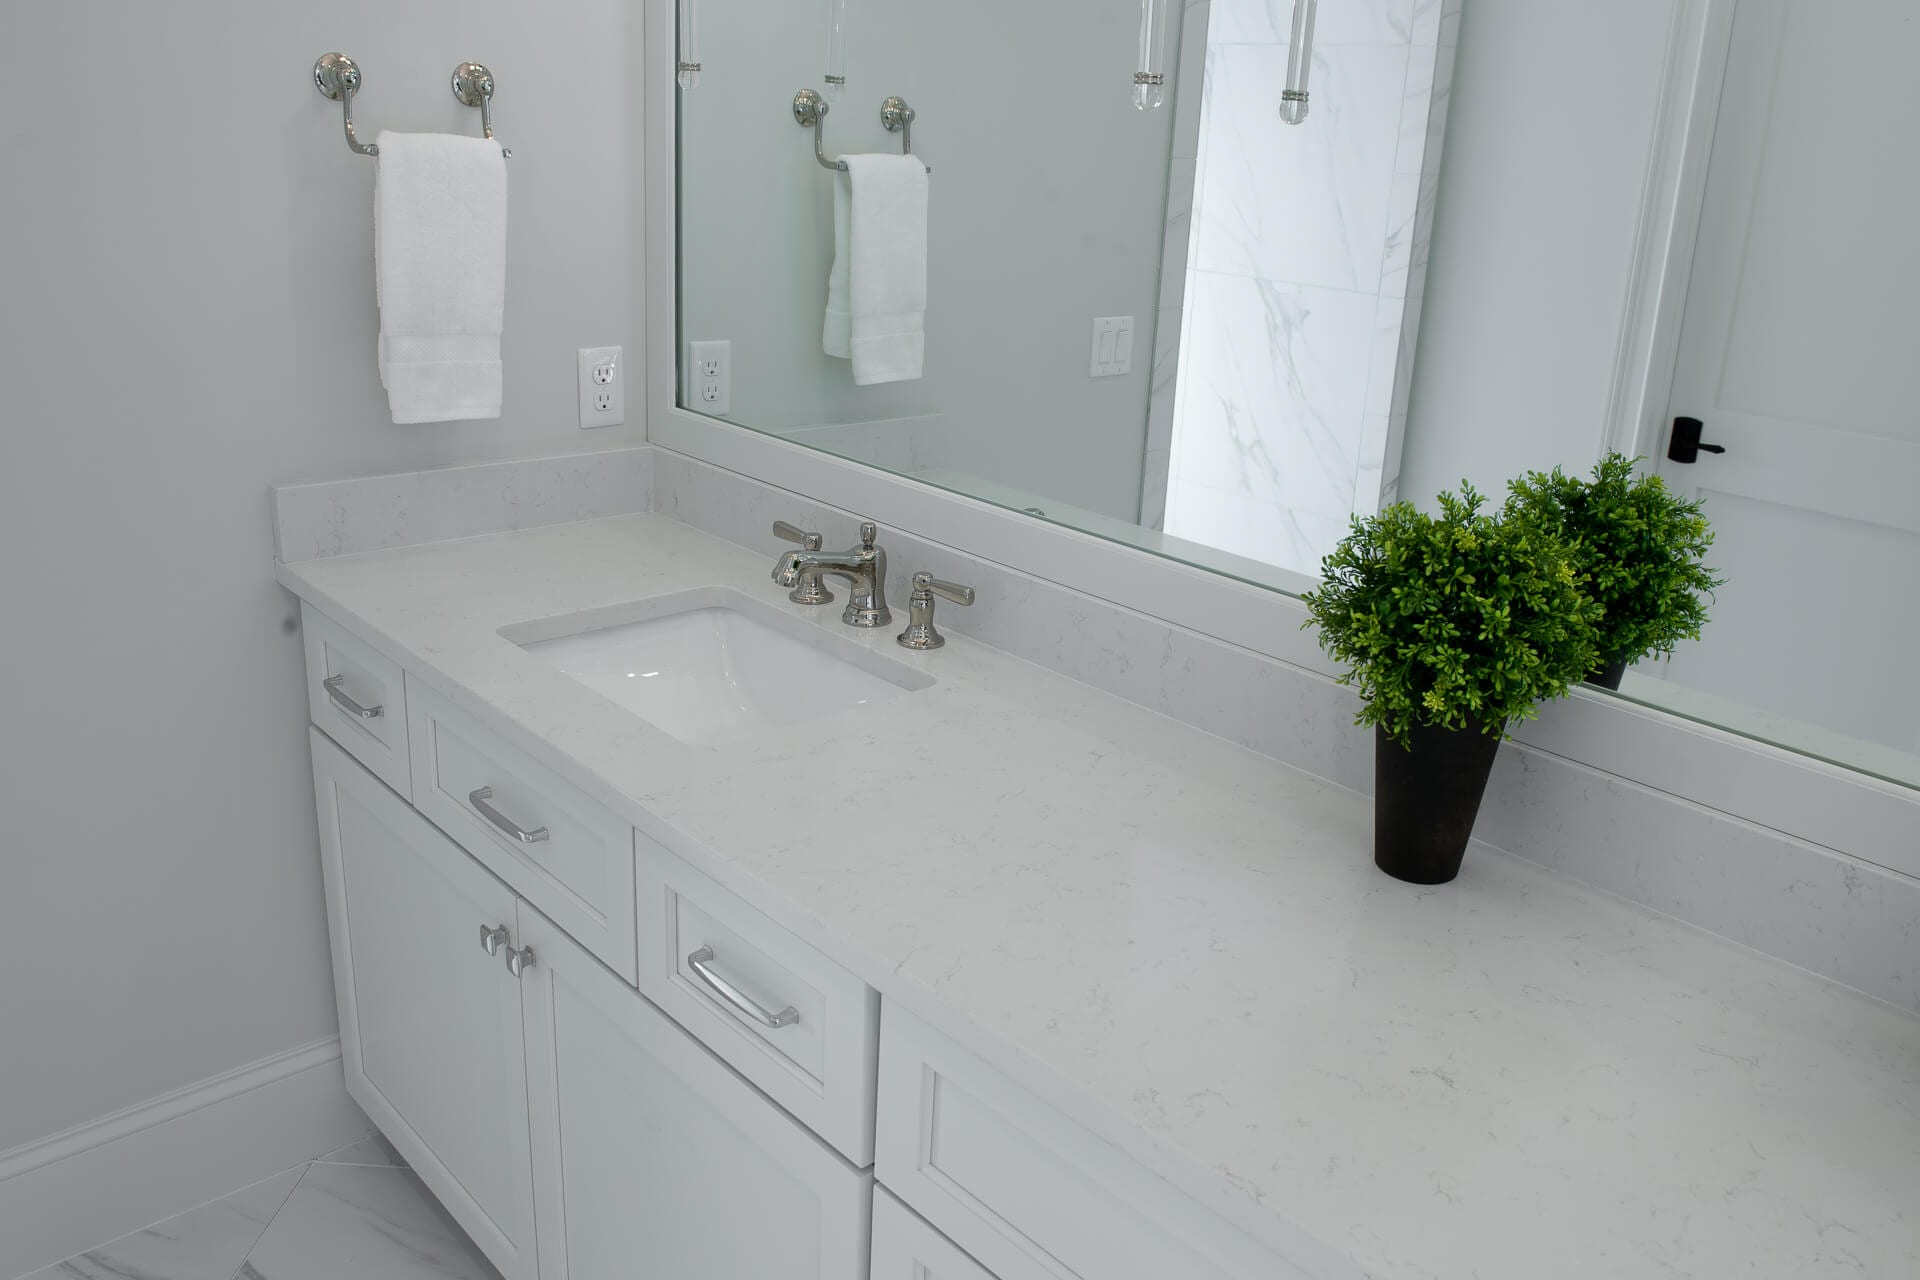 nd5 1117 Bathroom Vanities by Magnolia Countertops, Countertop Fabrication, Countertop Replacement and Repair in Cookeville and Crossville TN.